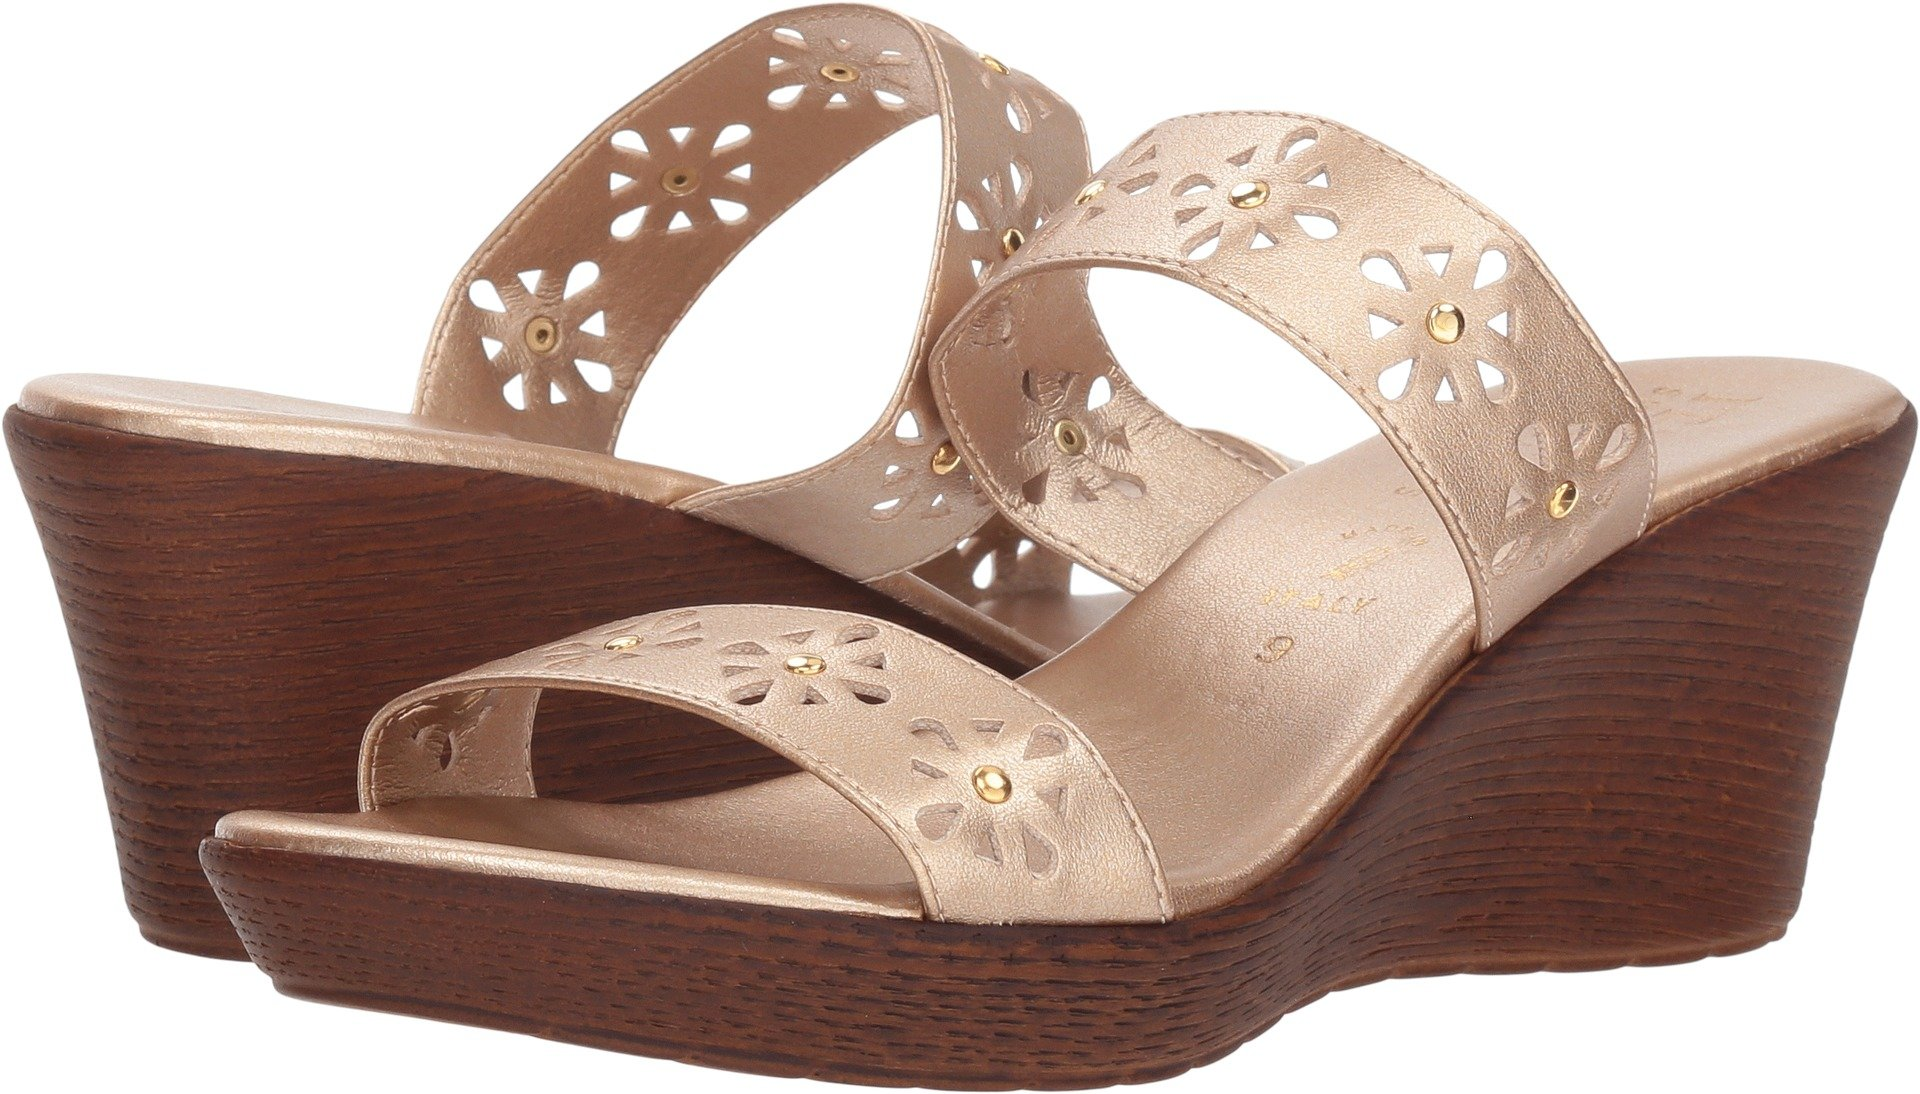 ITALIAN Shoemakers Syd Rose Gold Womens Wedge Sandals Size 7M